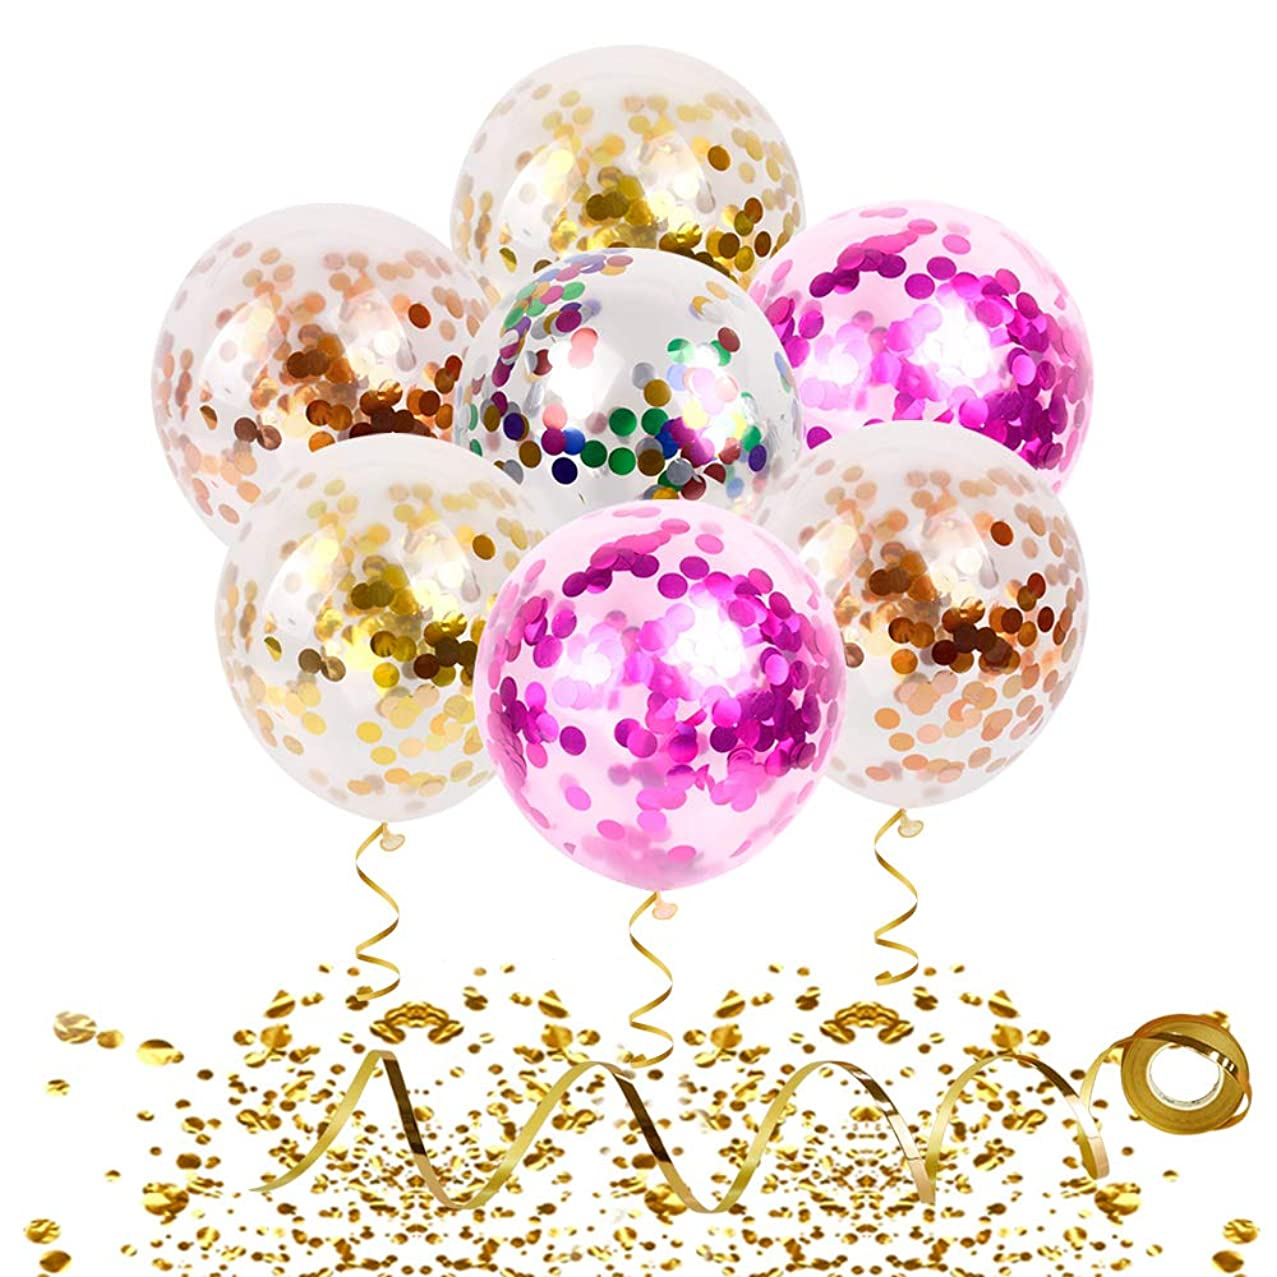 Confetti Balloons 20 Pieces Gold Curling Ribbon & Spraying Water Tool | 12 Inch Latex Party Balloons - Filled Gold Pink Champagne Mylar Confetti Dot For Wedding Birthday Anniversary New Year Decorations